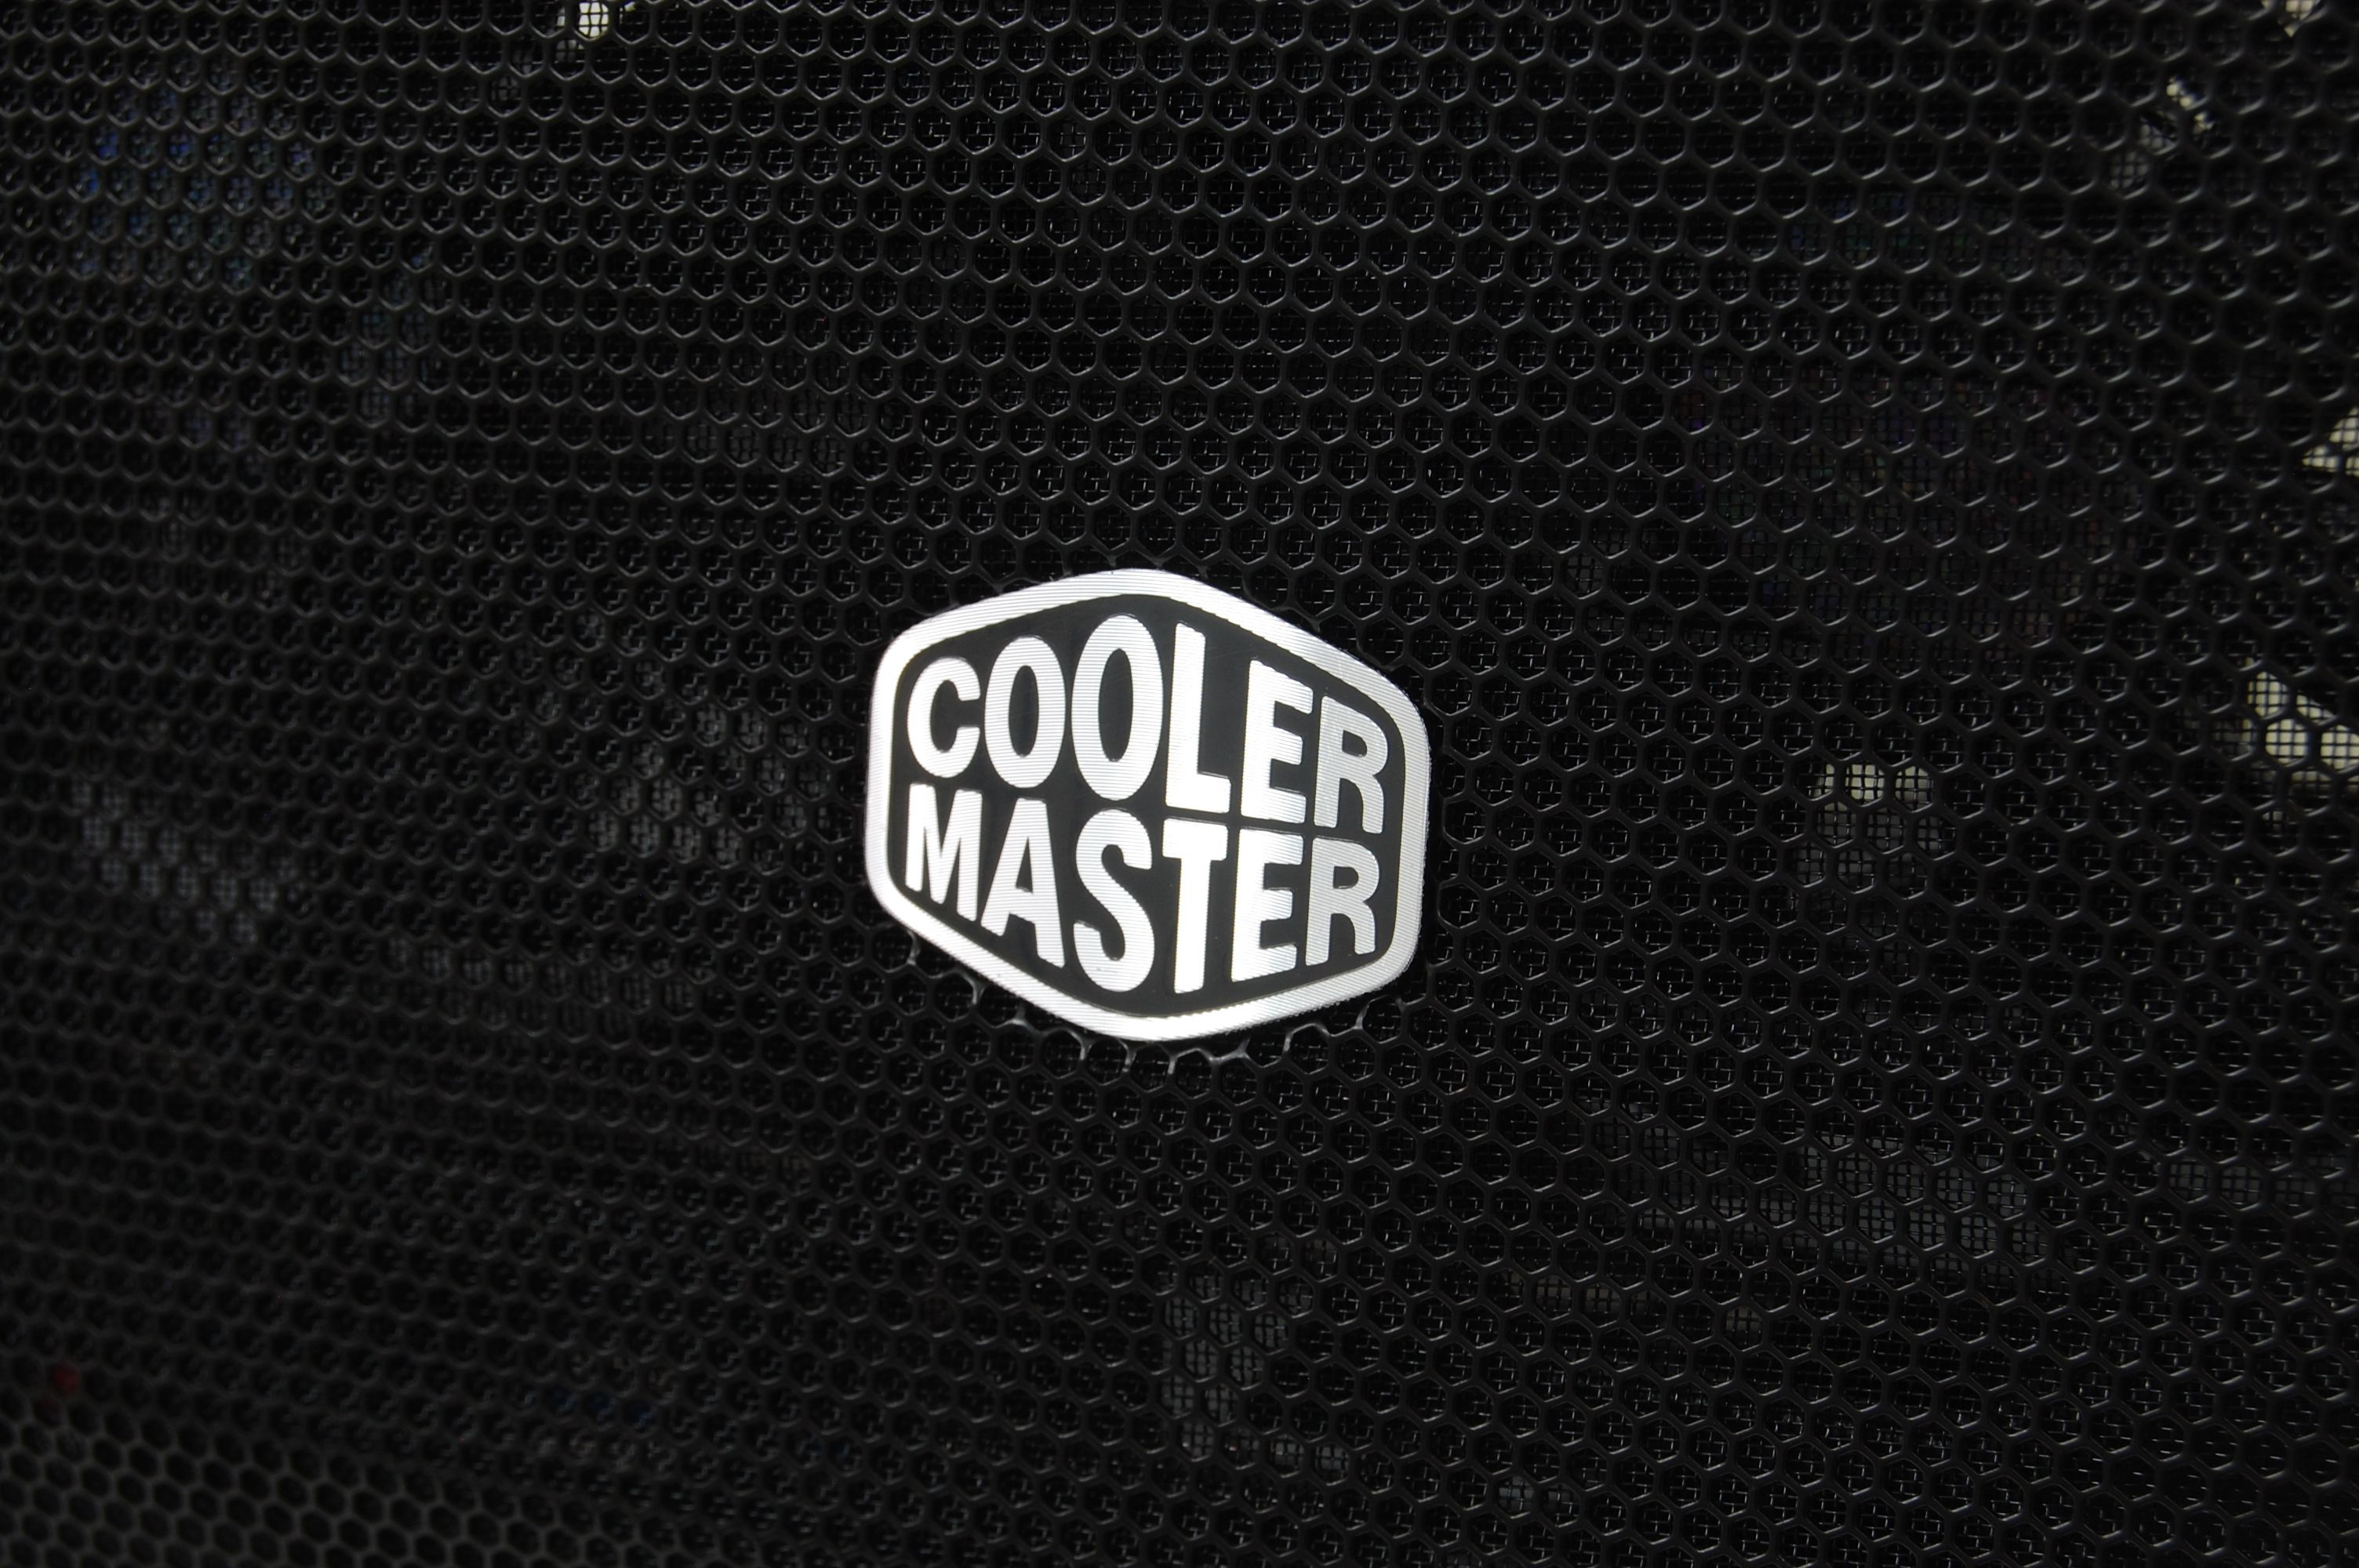 HAF Xb Cooler Master Badge